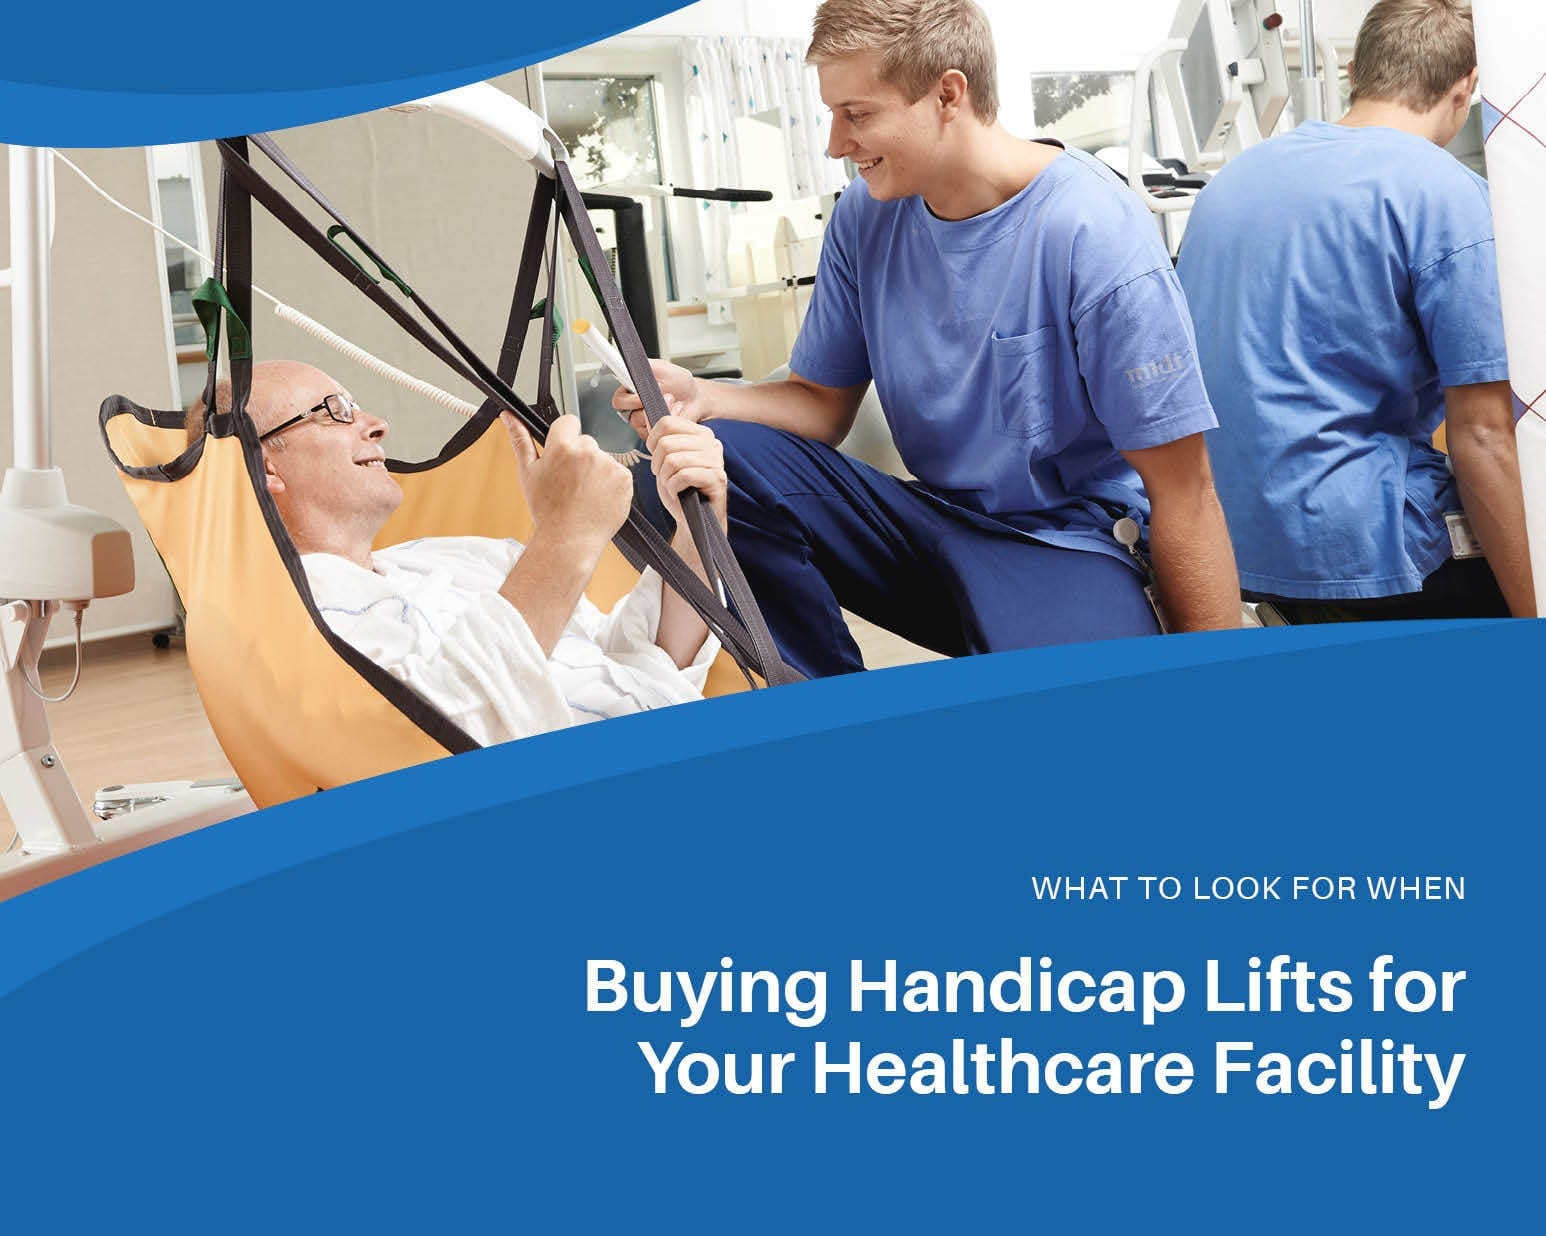 What to Look for When Buying Handicap Lifts for Your Healthcare Facility